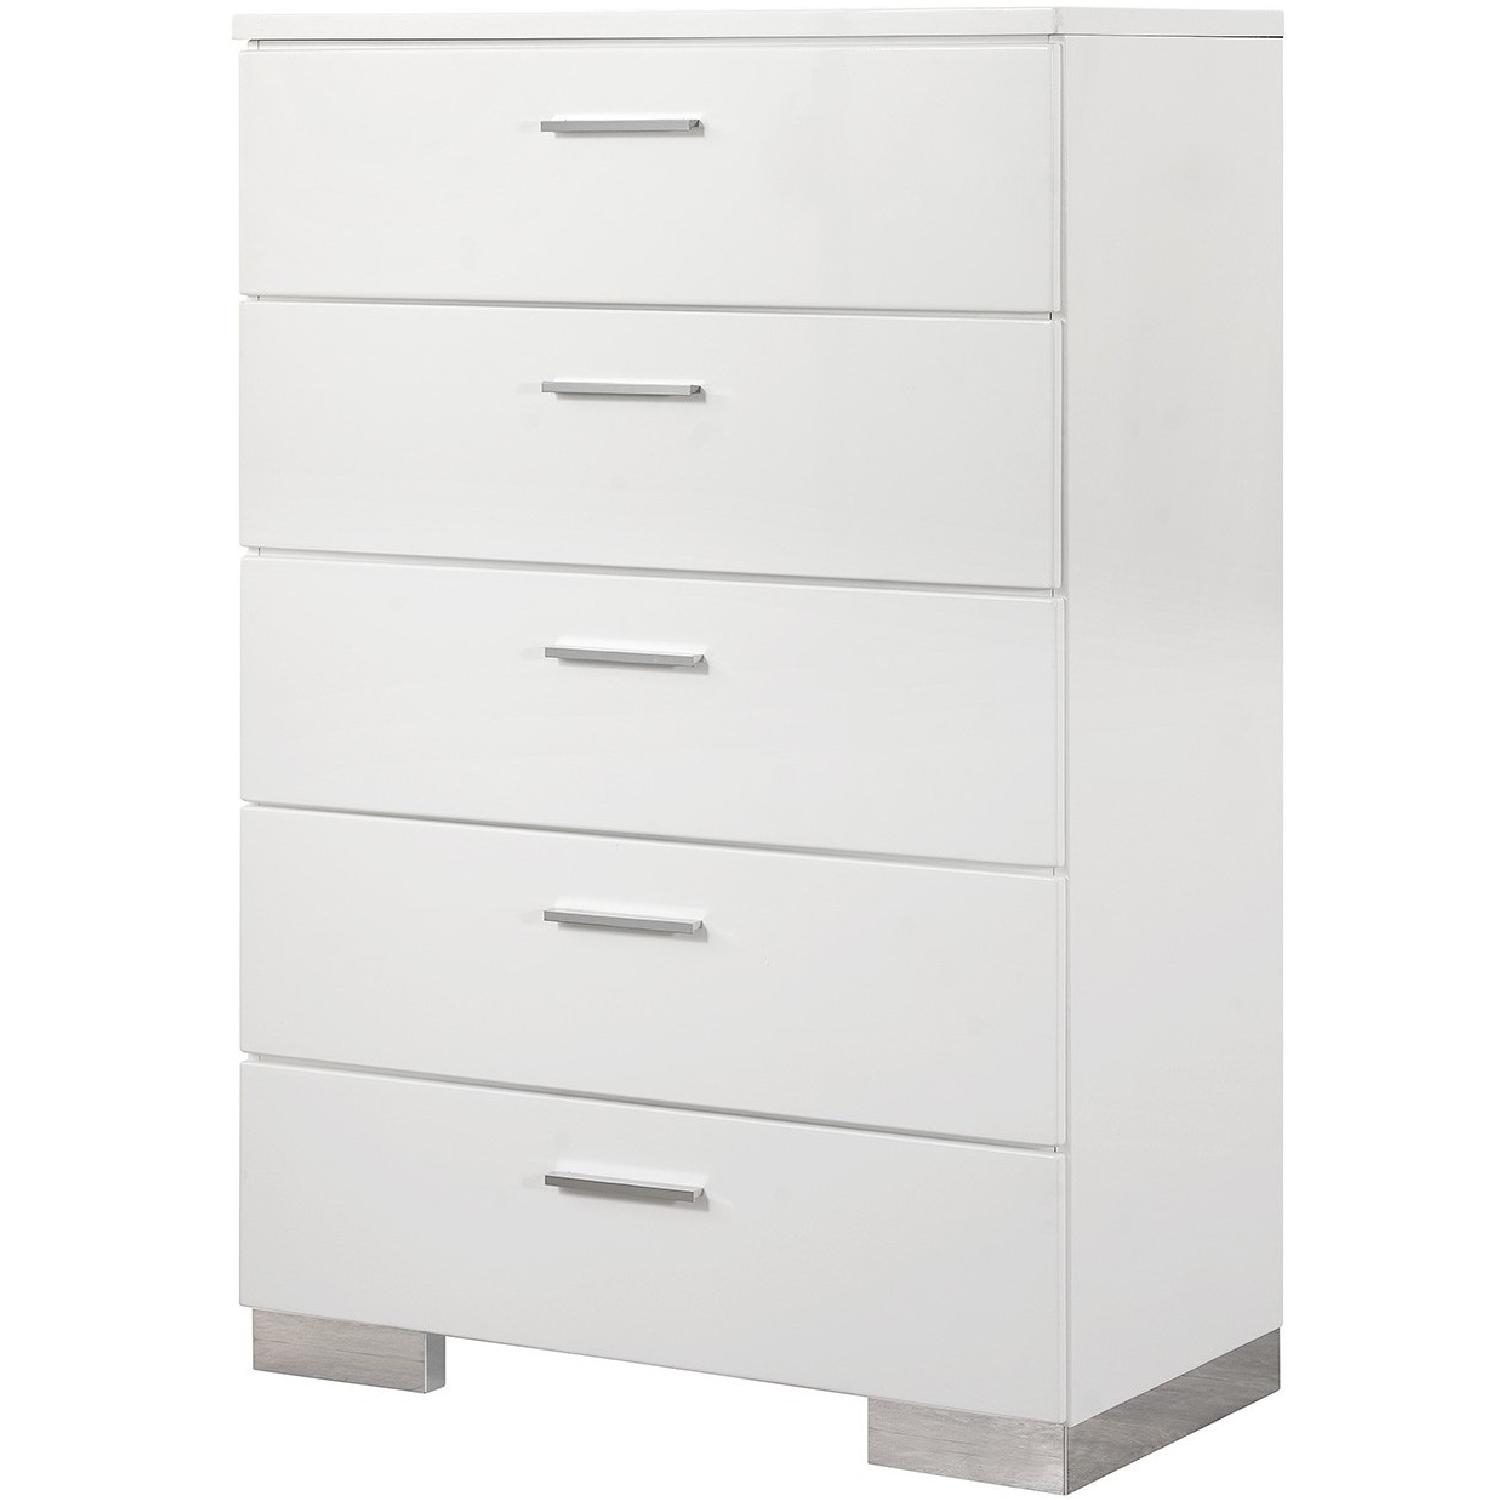 unlock mobilemonitors ikea home exquisite kullen dresser decorative white awesome chest malm x hemnes drawer ideas